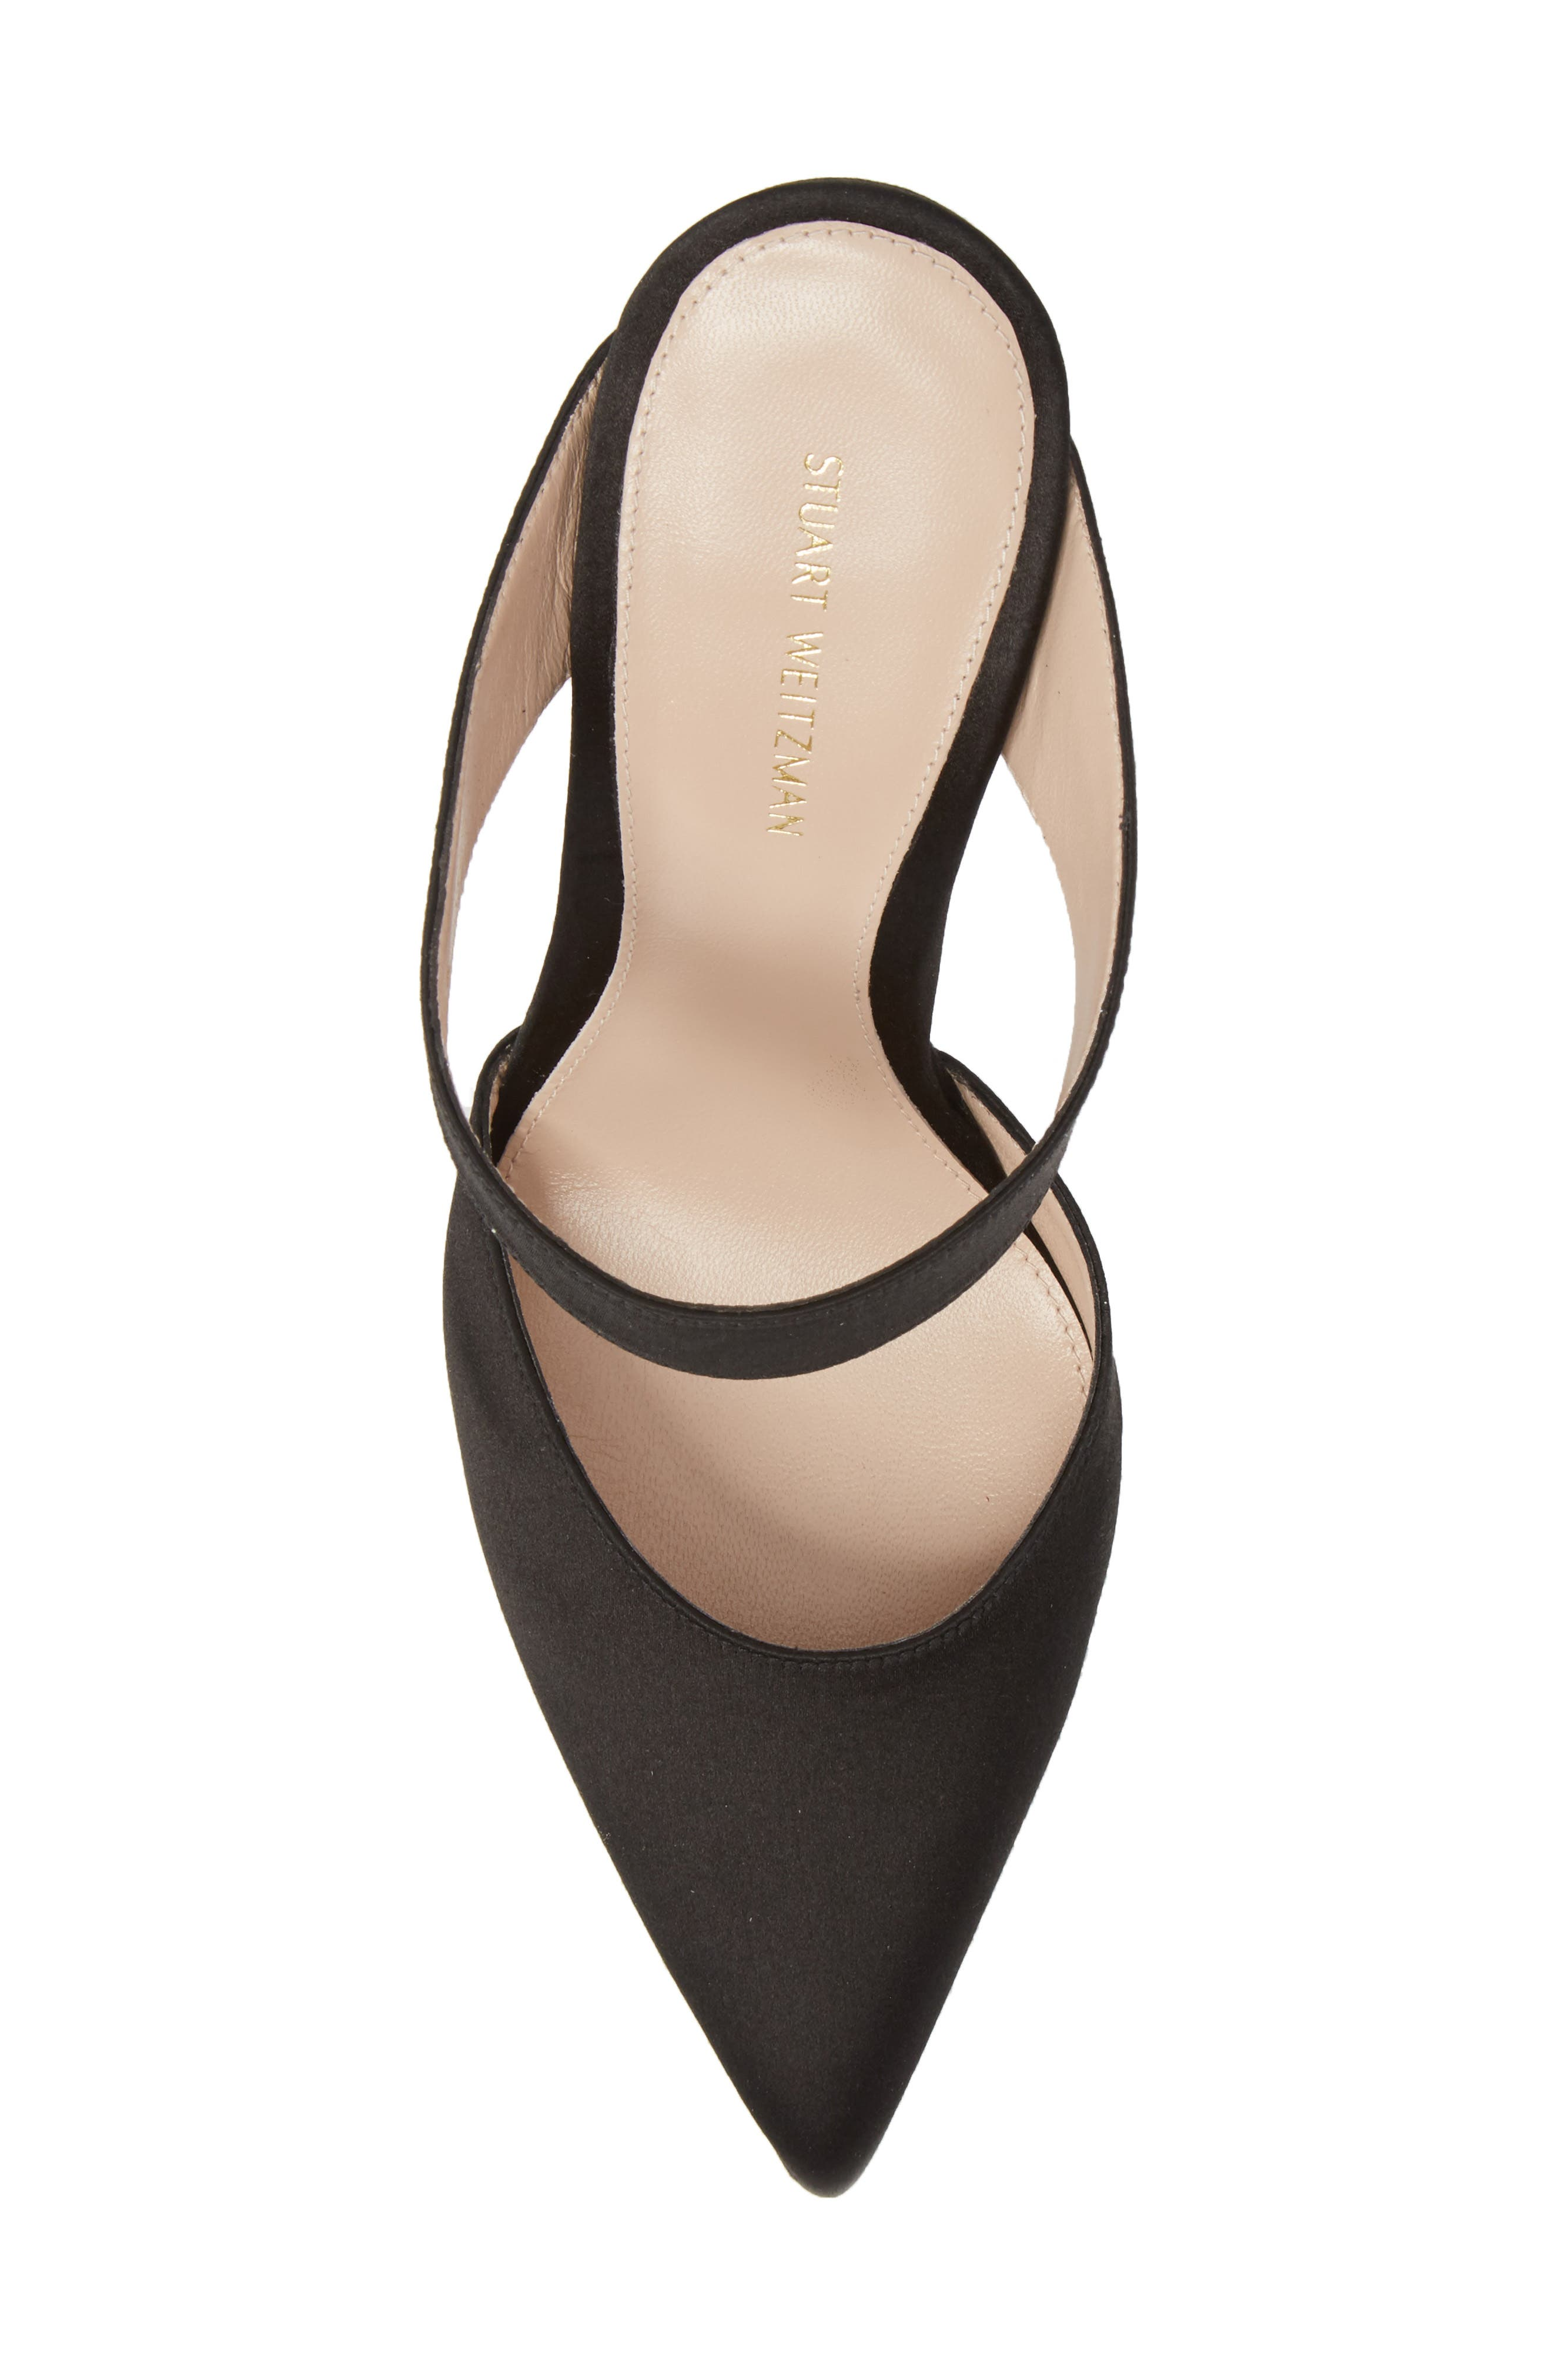 Event Pointy Toe Pump,                             Alternate thumbnail 5, color,                             002